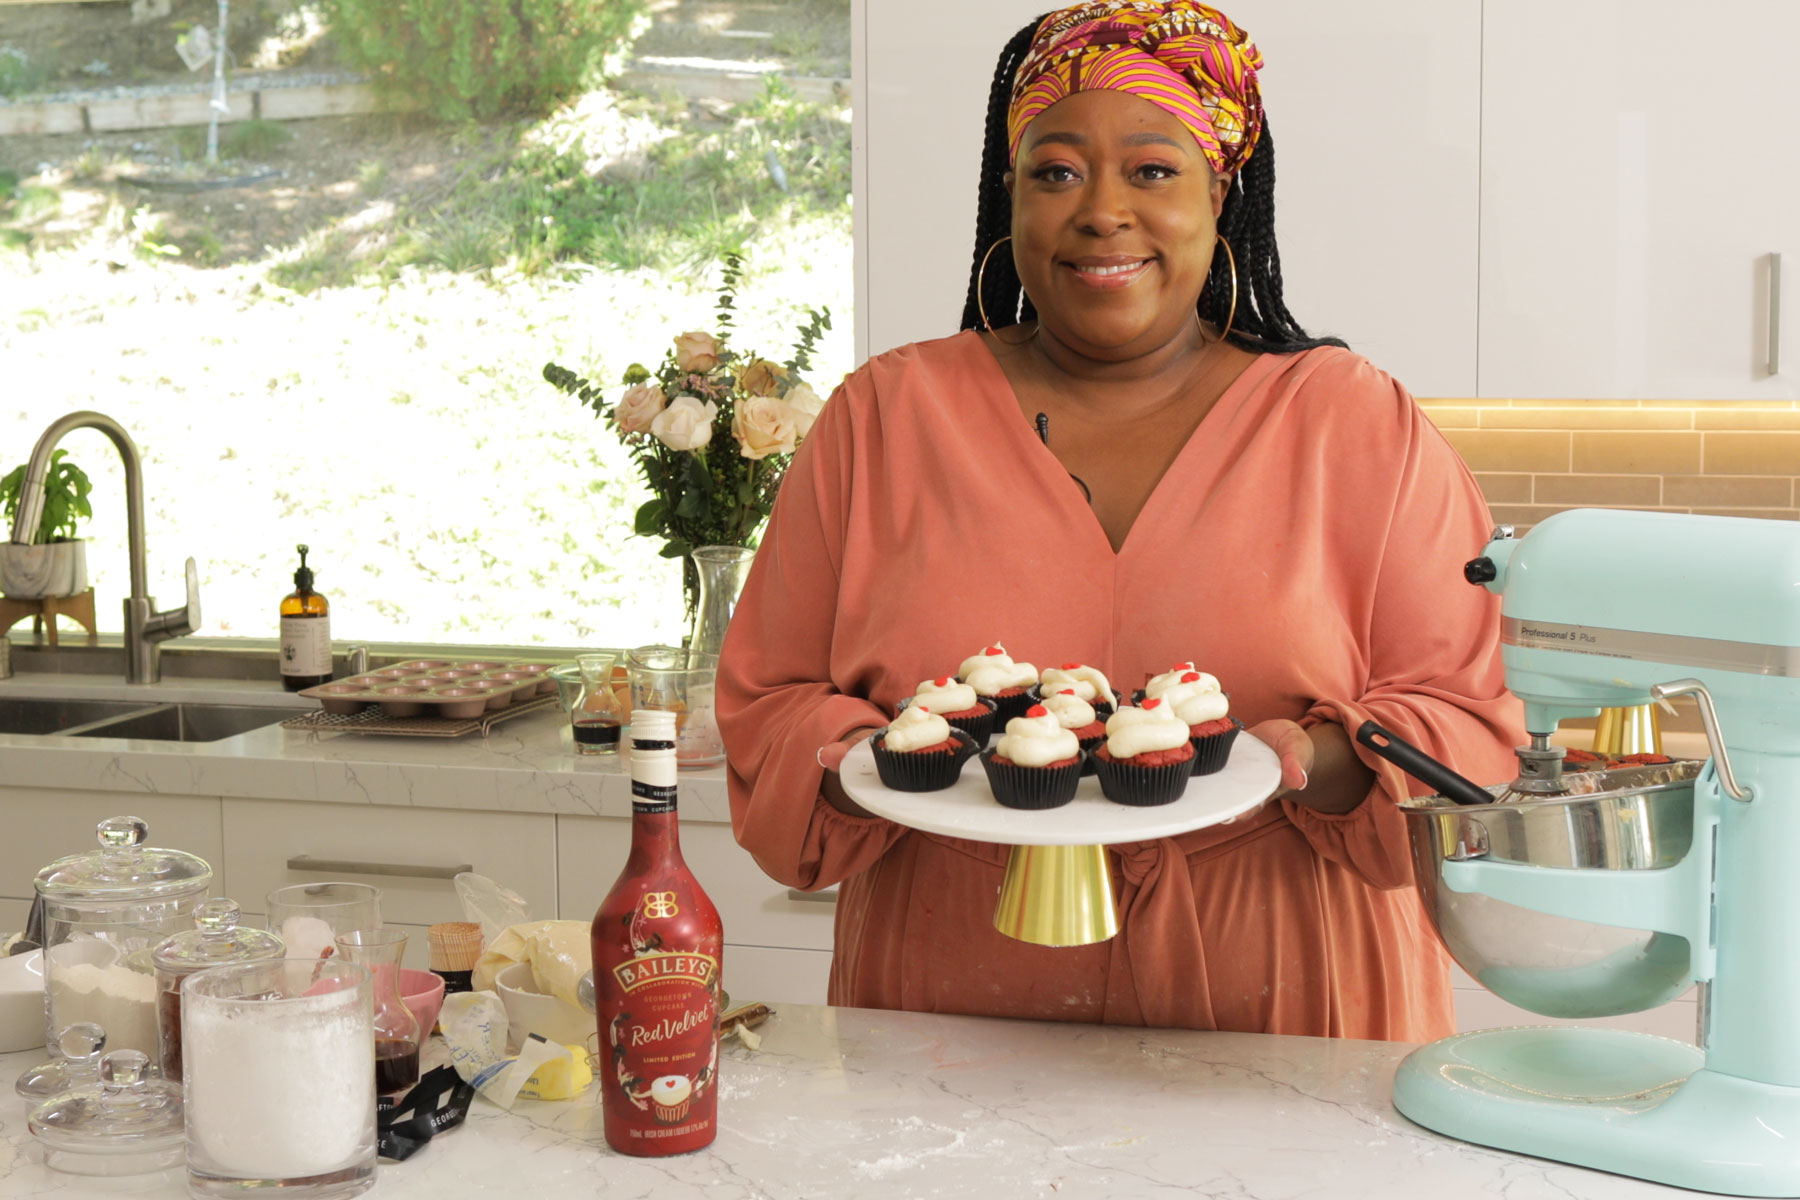 Loni Love holding cupcakes